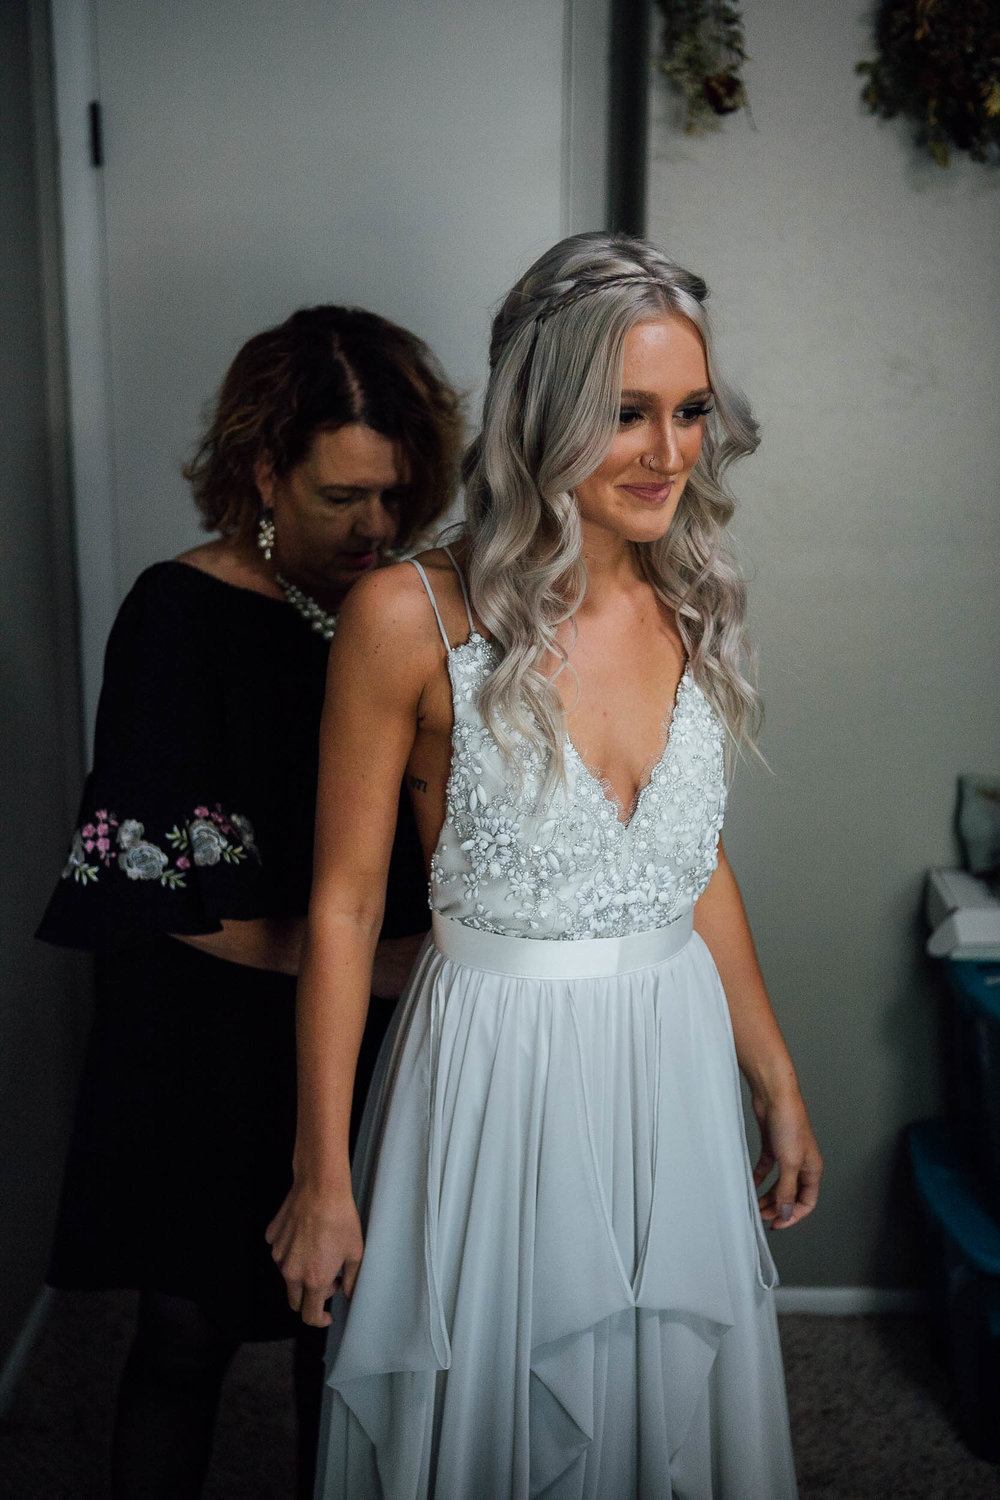 Mother of the bride helping bride put on her wedding dress